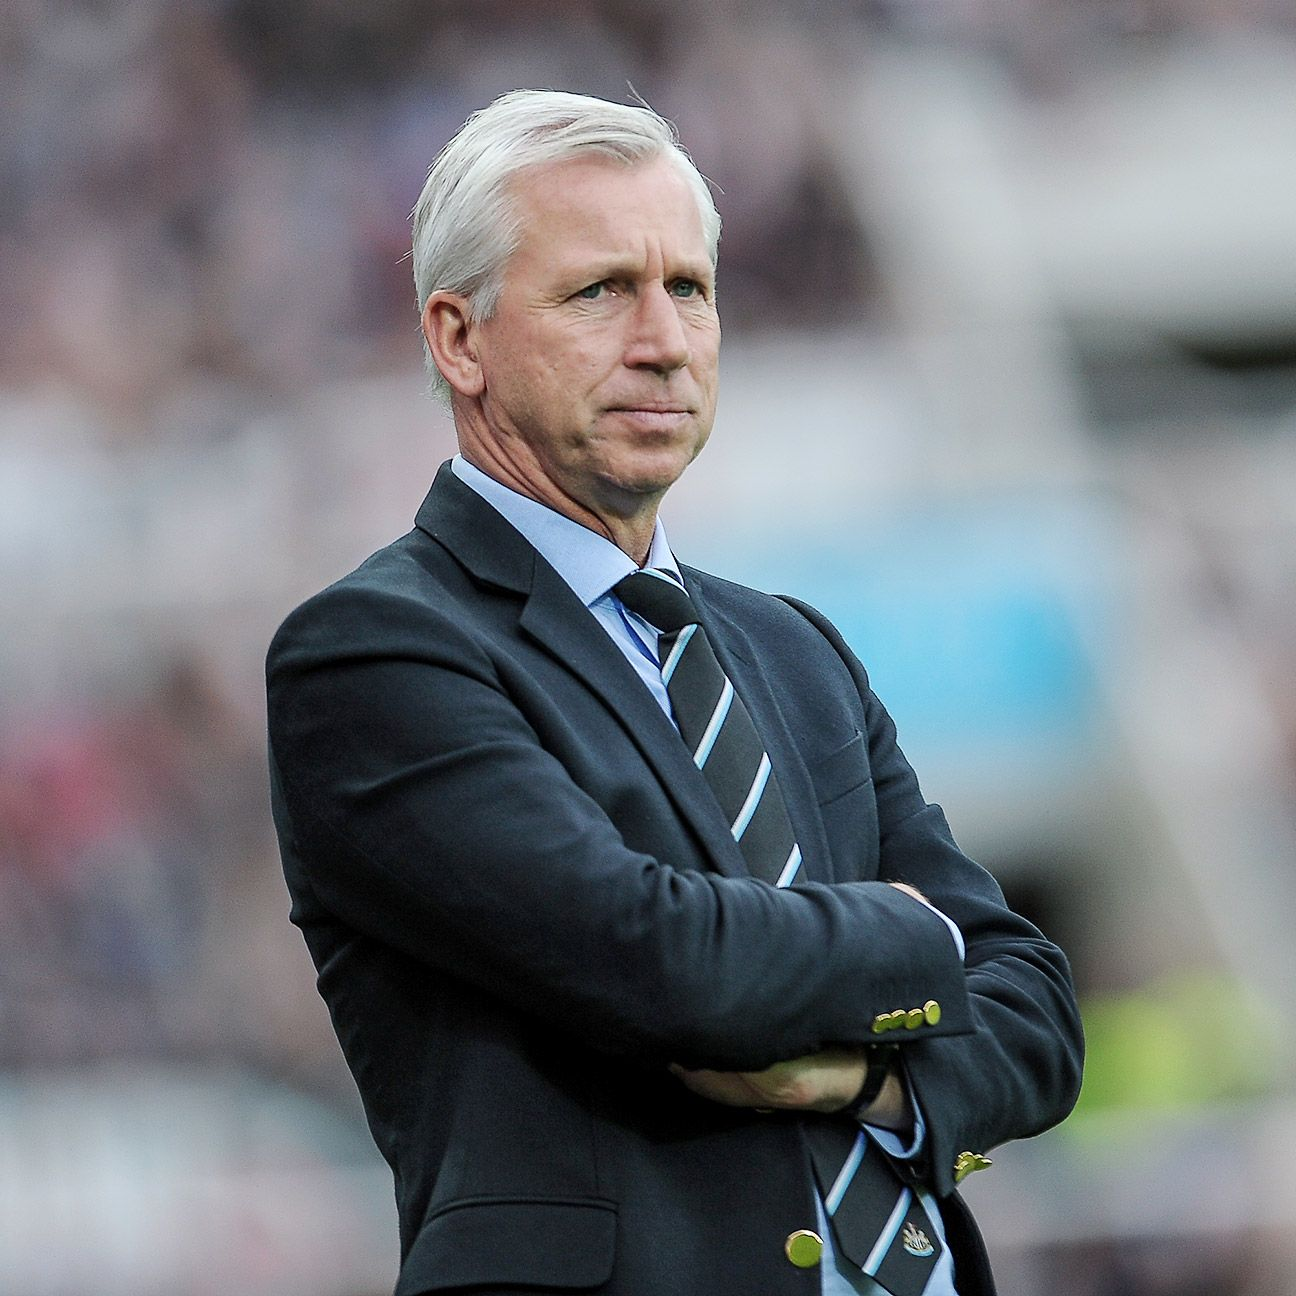 Alan Pardew has resurgent Newcastle sitting in 12th place in the table.